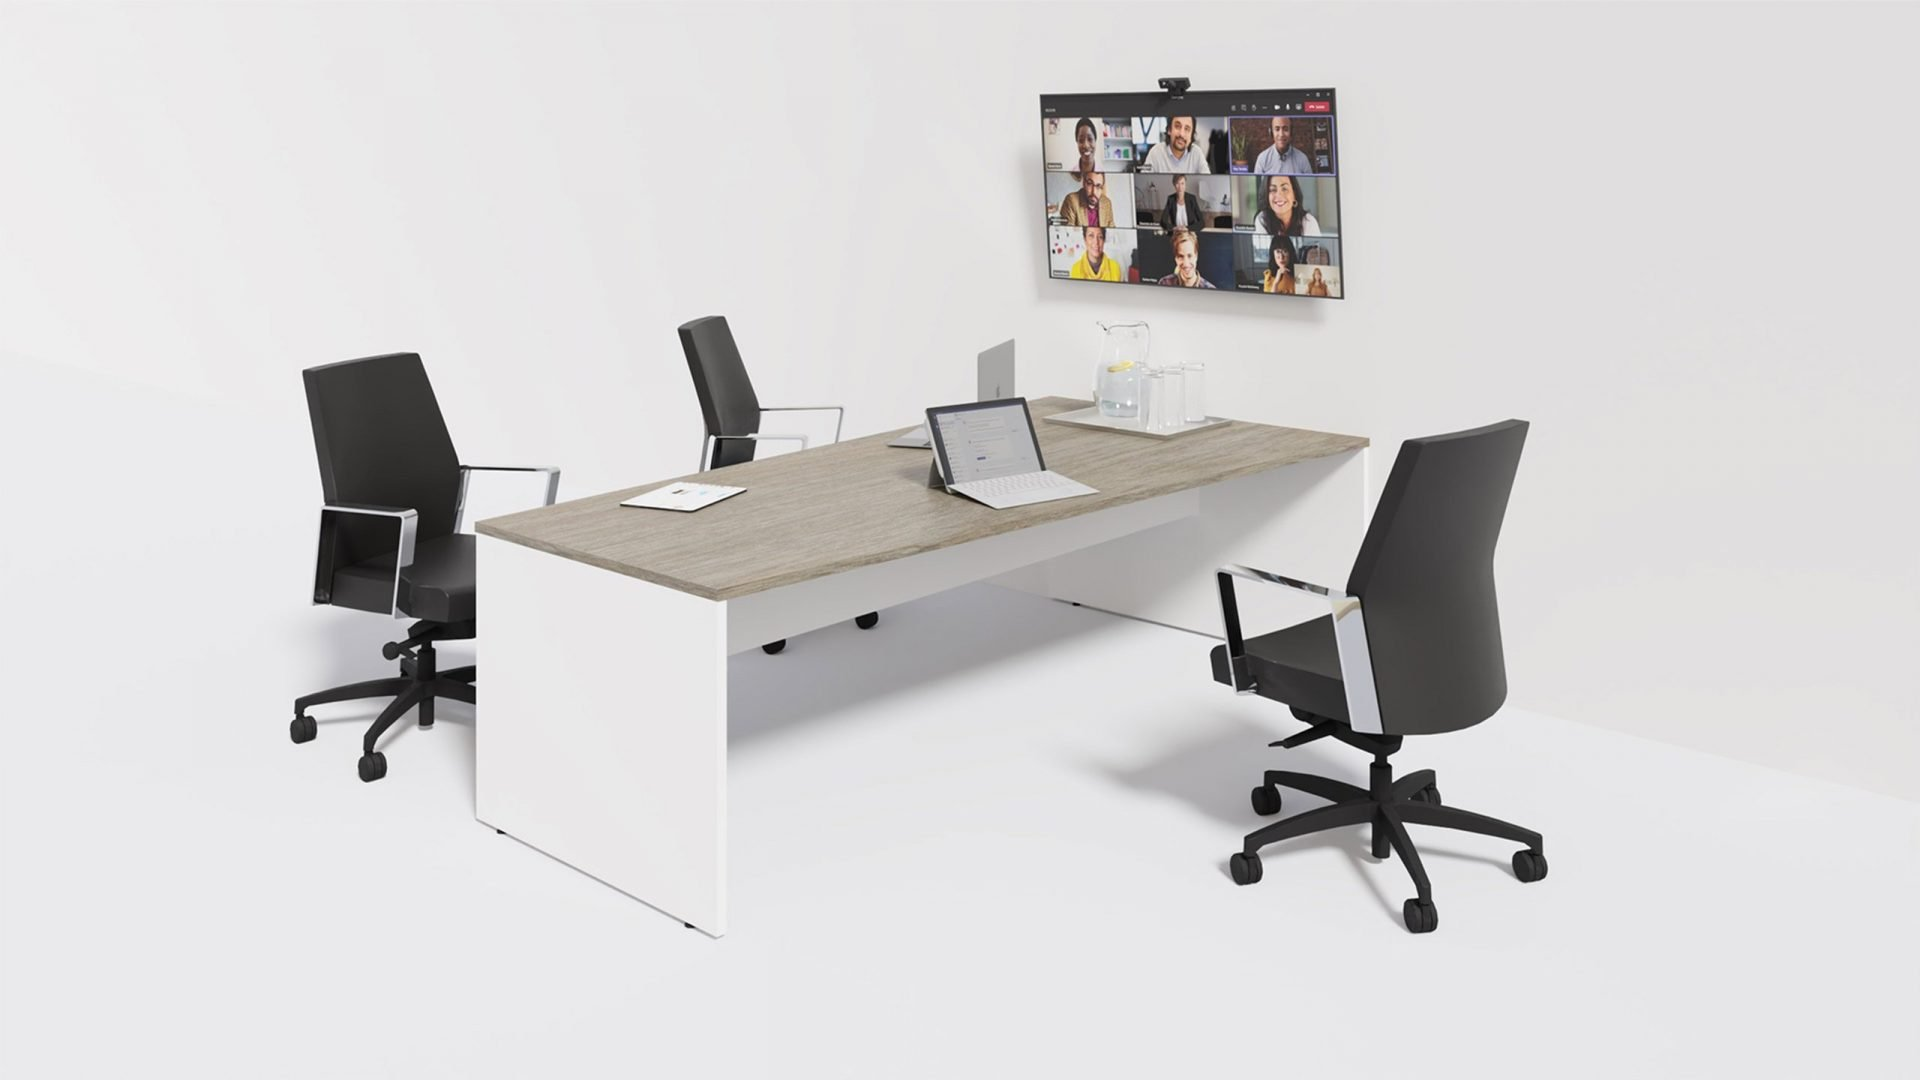 Trapezoid Boardroom Table 1392 in the scene with chairs